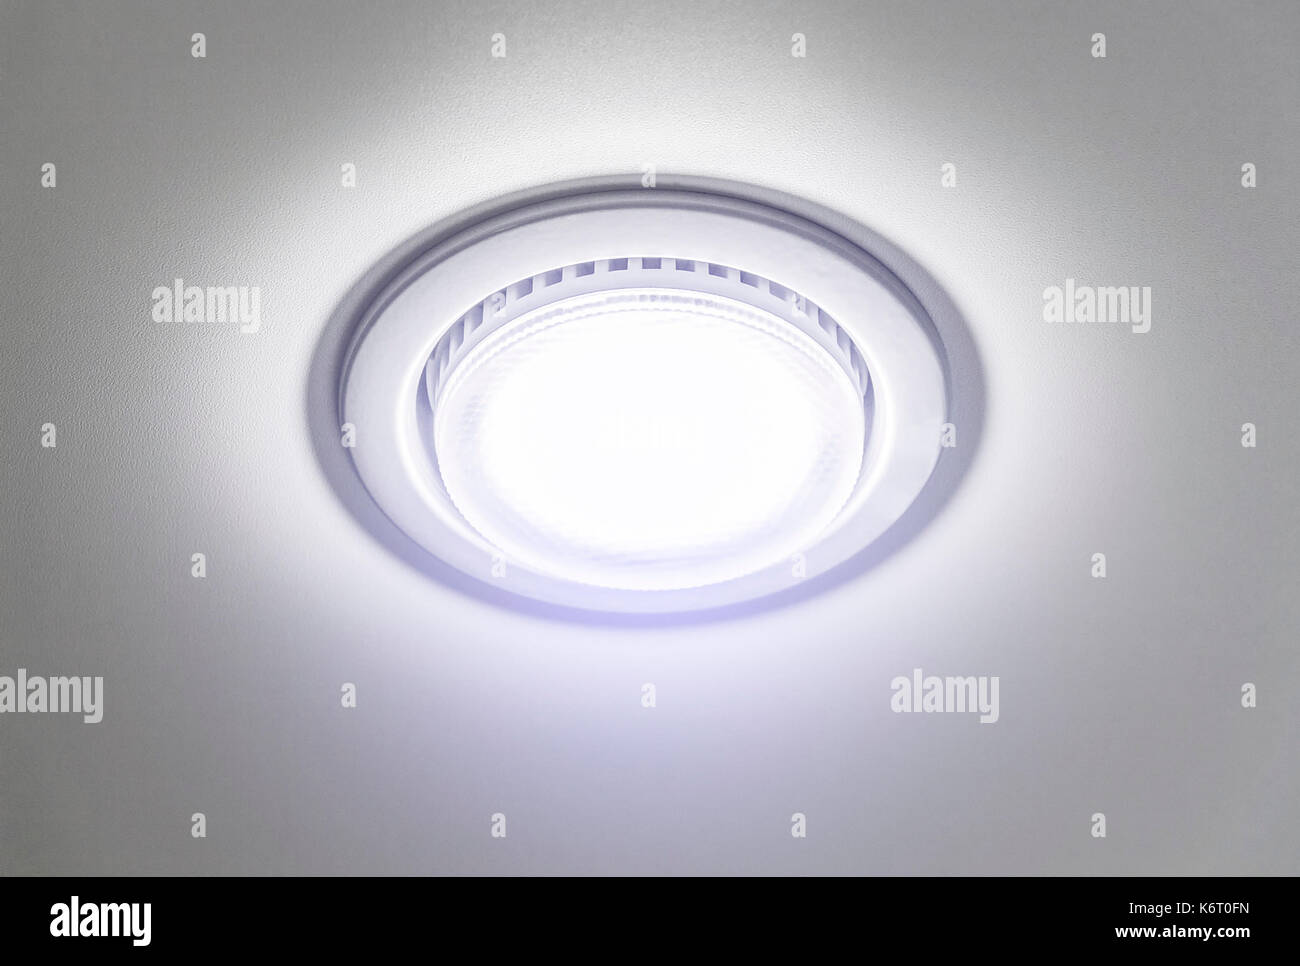 Ceiling recessed lamp close-up on a background of tension ceiling. - Stock Image